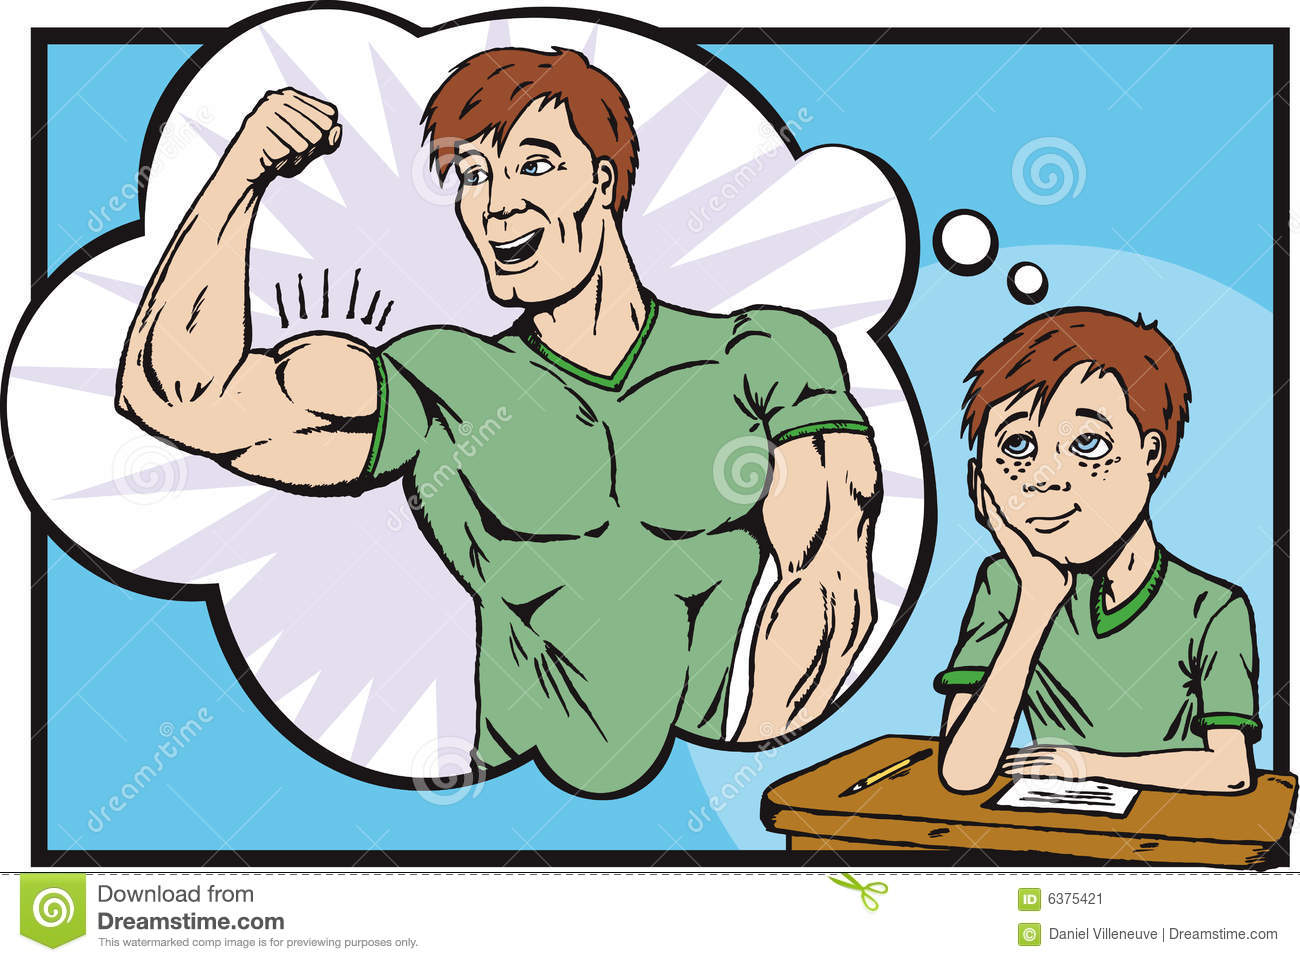 http://thumbs.dreamstime.com/z/boy-dreaming-man-wants-to-be-6375421.jpg